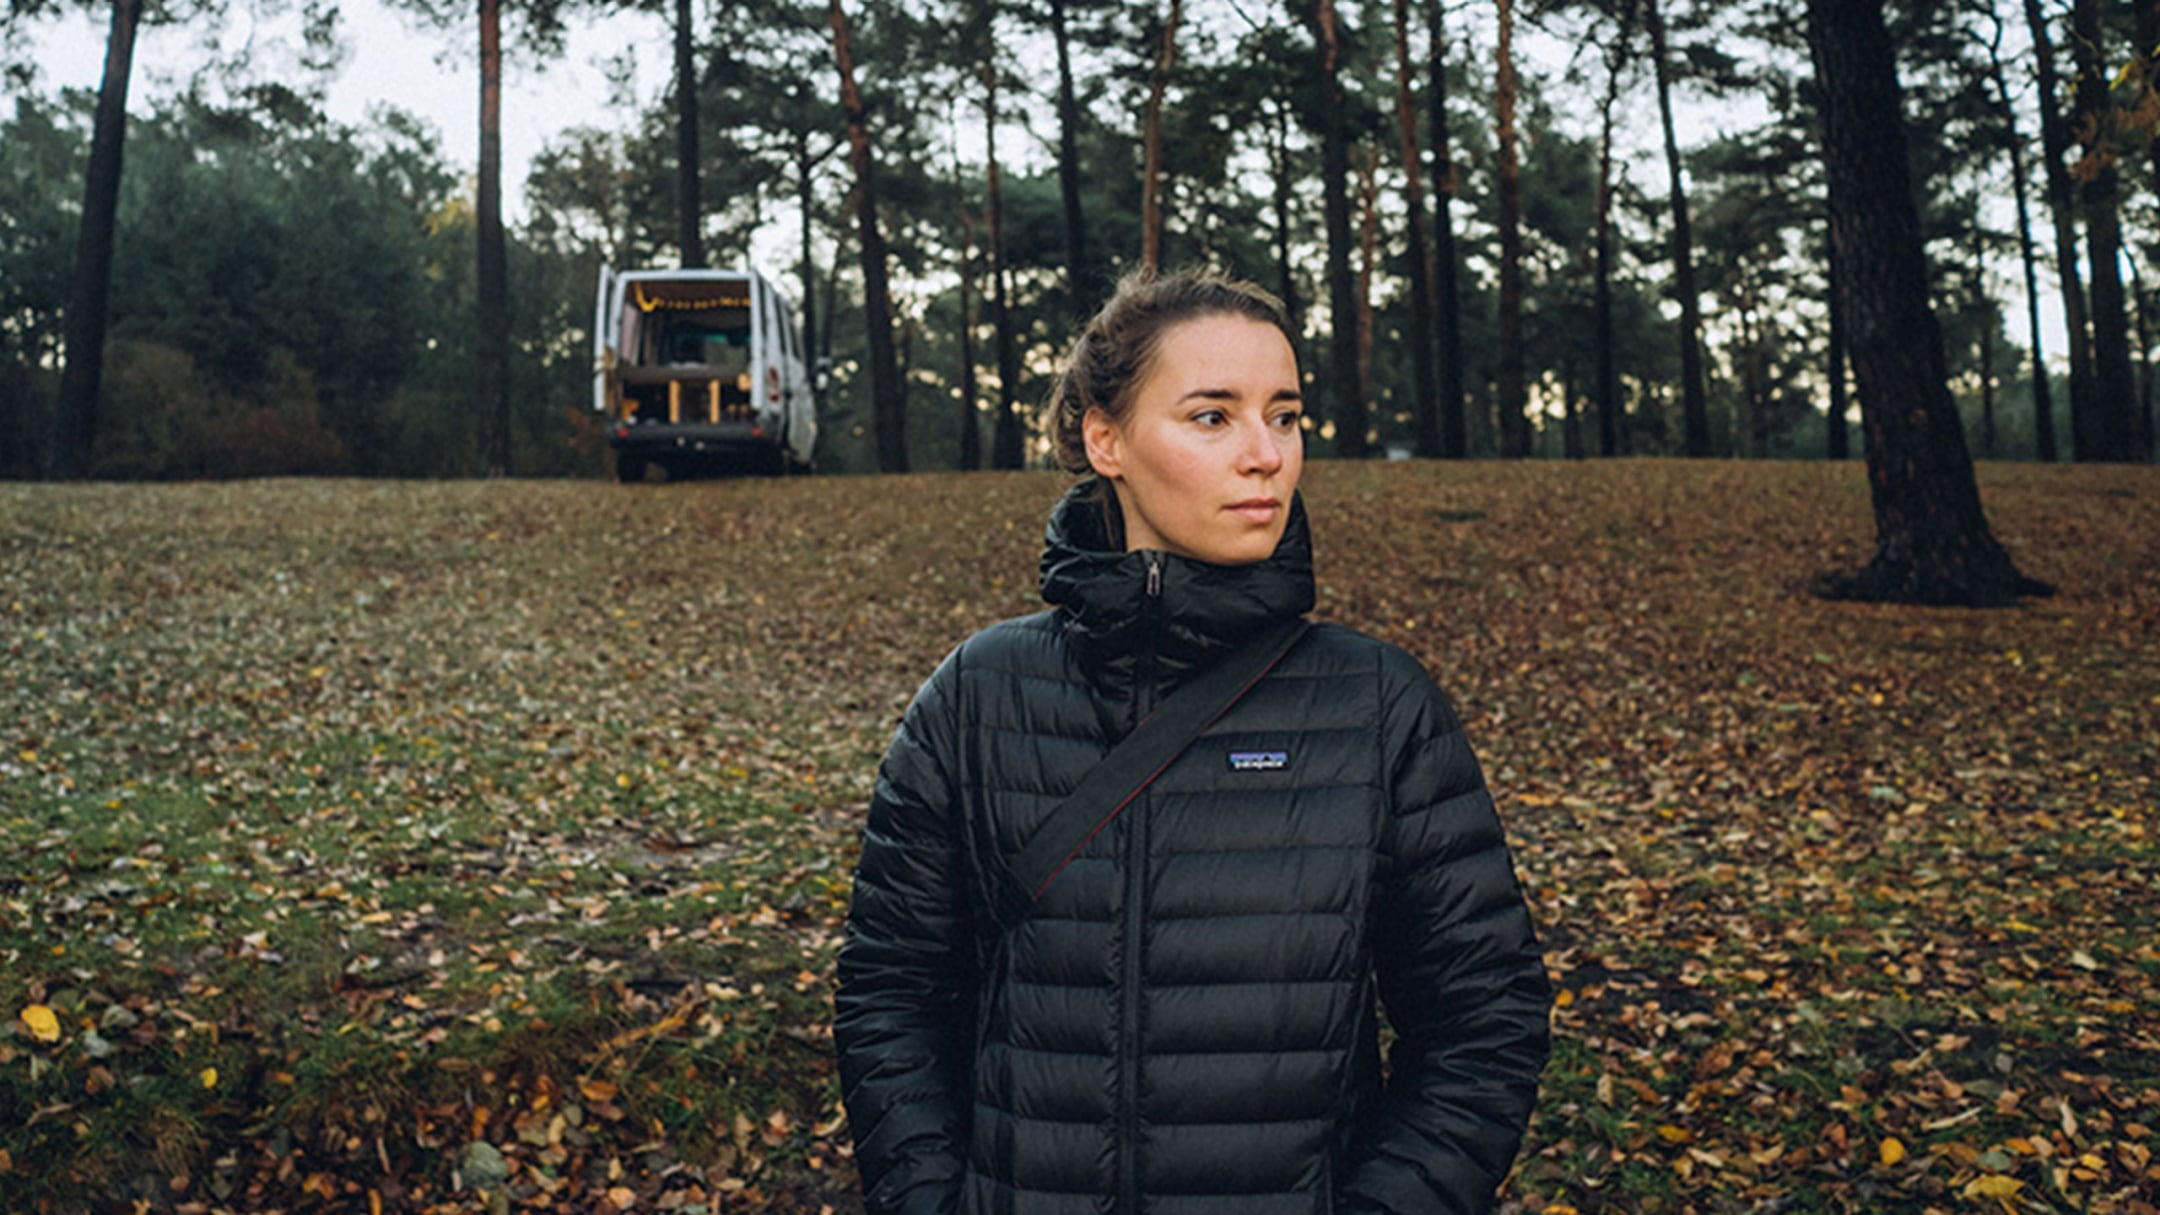 Julia Nimke is driving in the forest with her Mercedes-Benz Sprinter